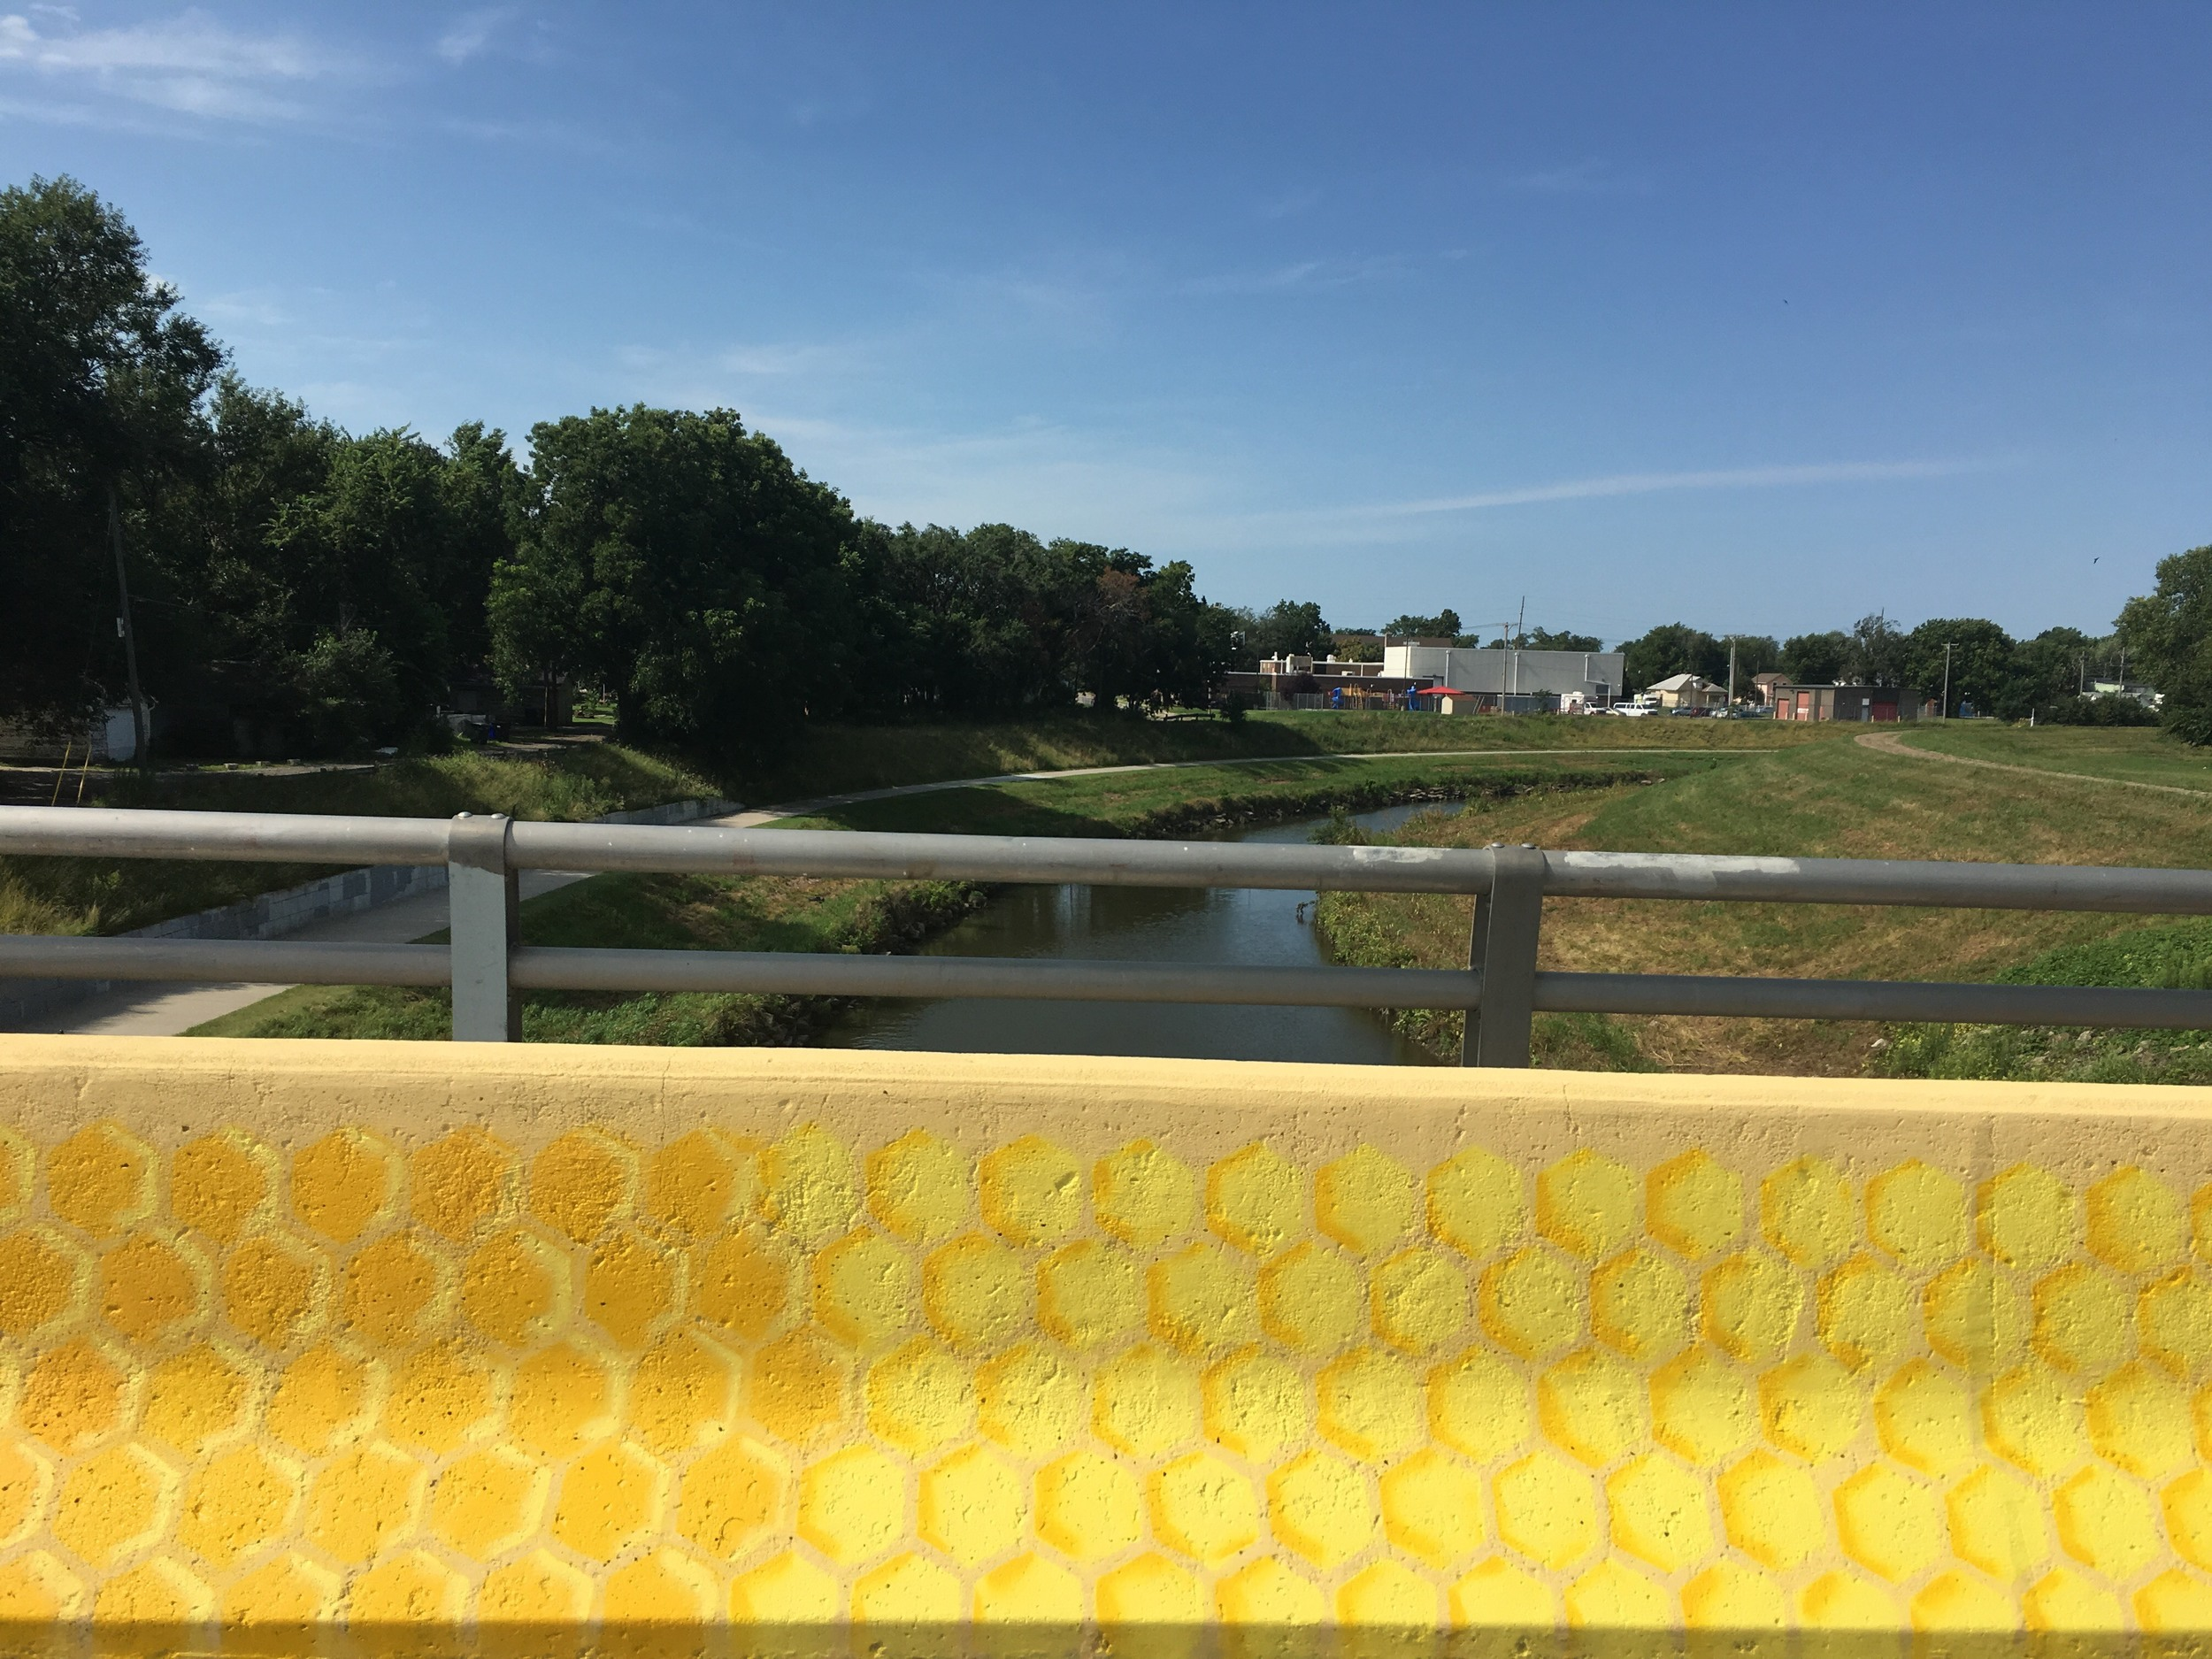 The traffic side of the bridge displays a honeycomb pattern, which references the stream below as well as the structure and community which are hallmarks of a hive. -